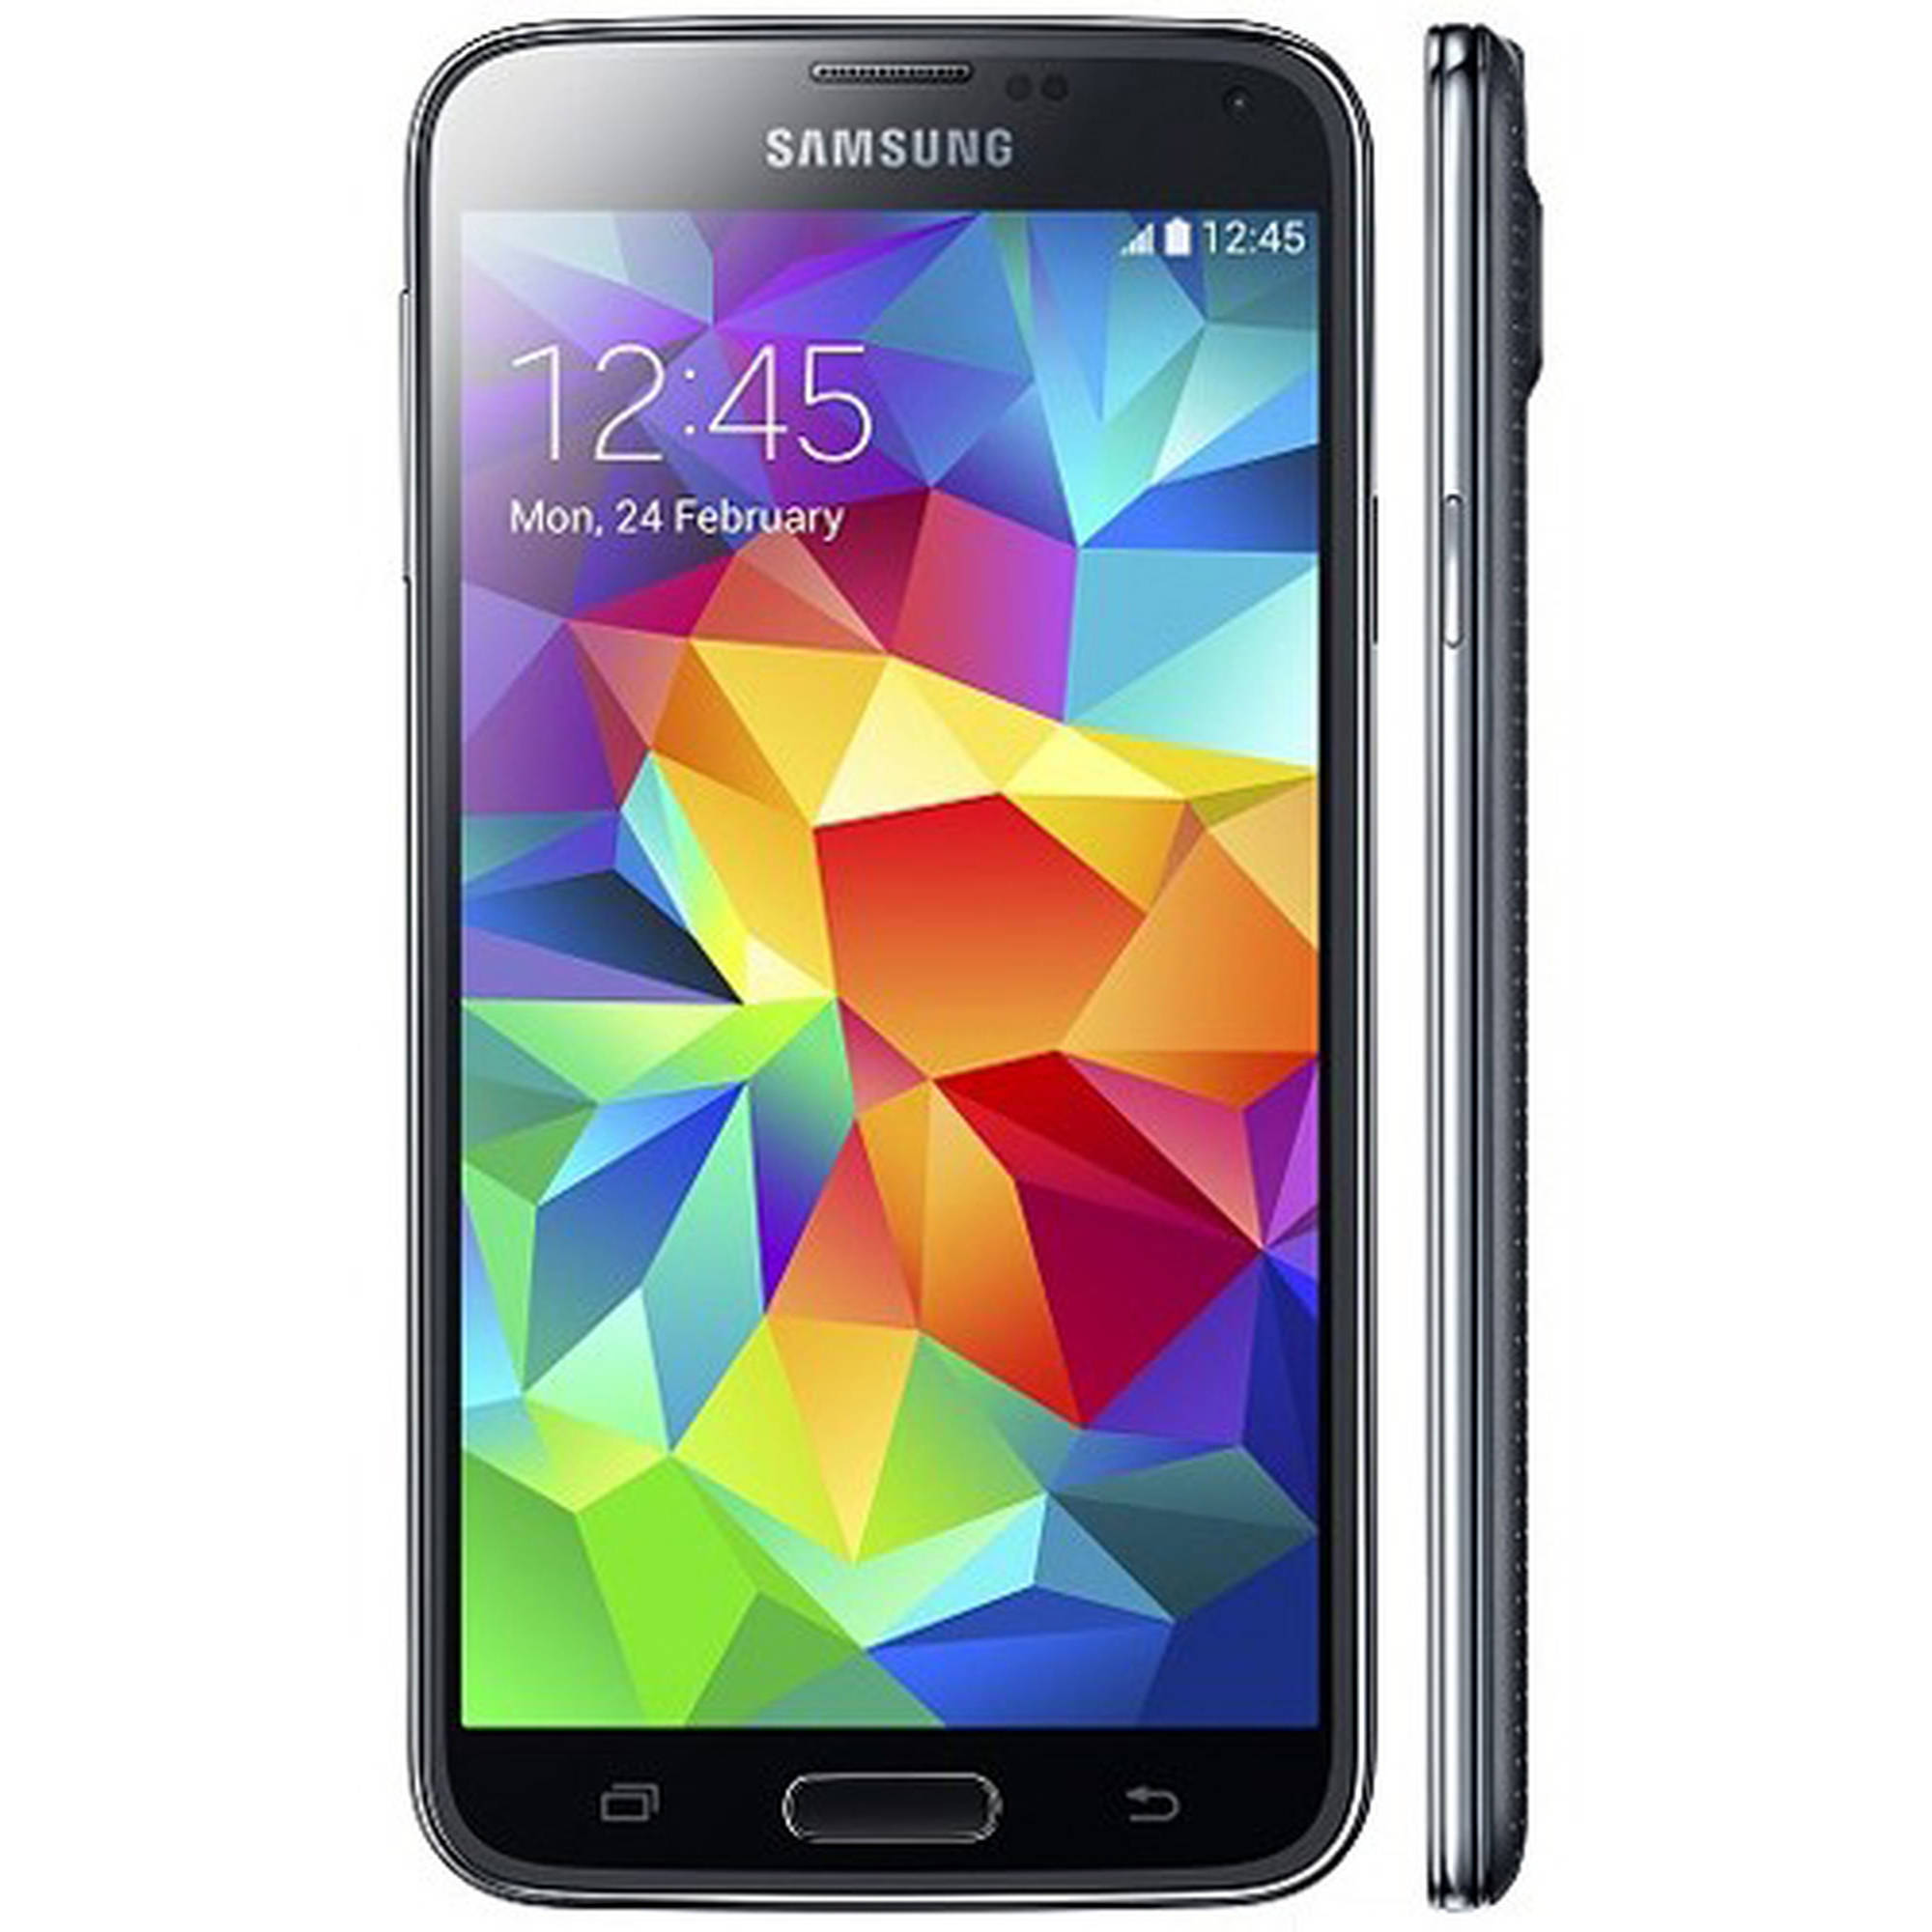 How to use scrapbook on galaxy s5 - How To Use Scrapbook On Galaxy S5 2